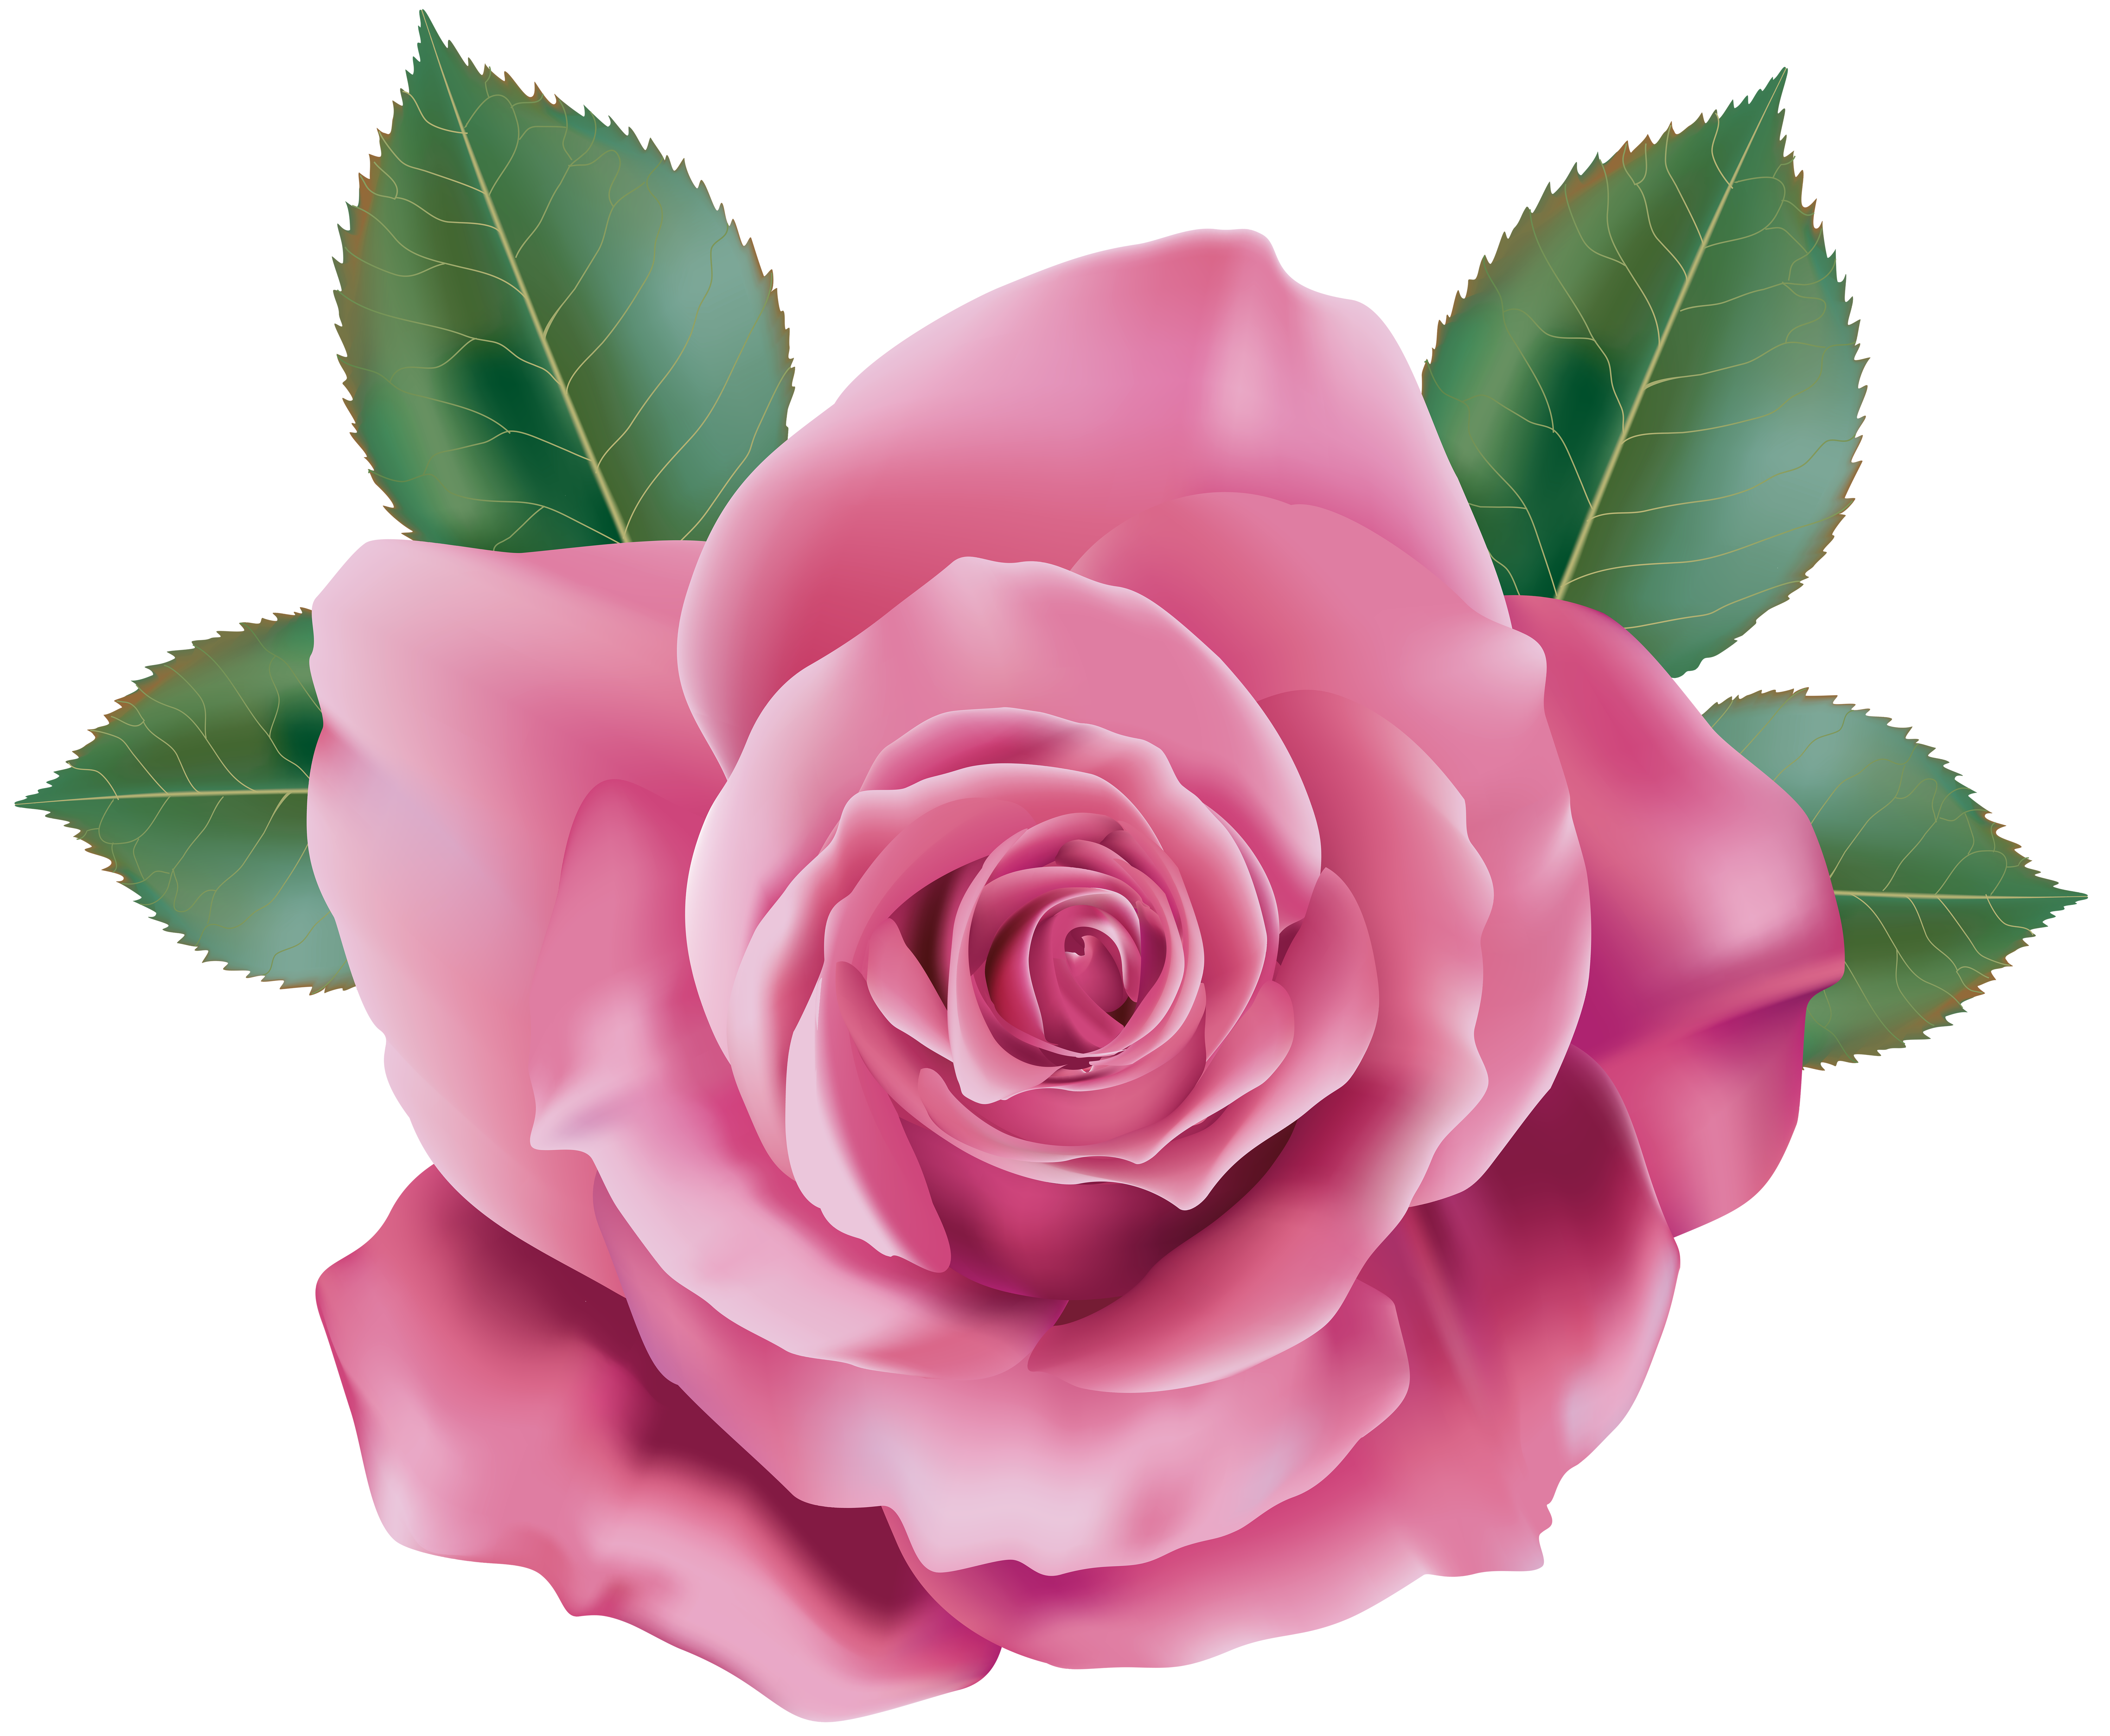 Pink rose transparent png. Laptop clipart colorful